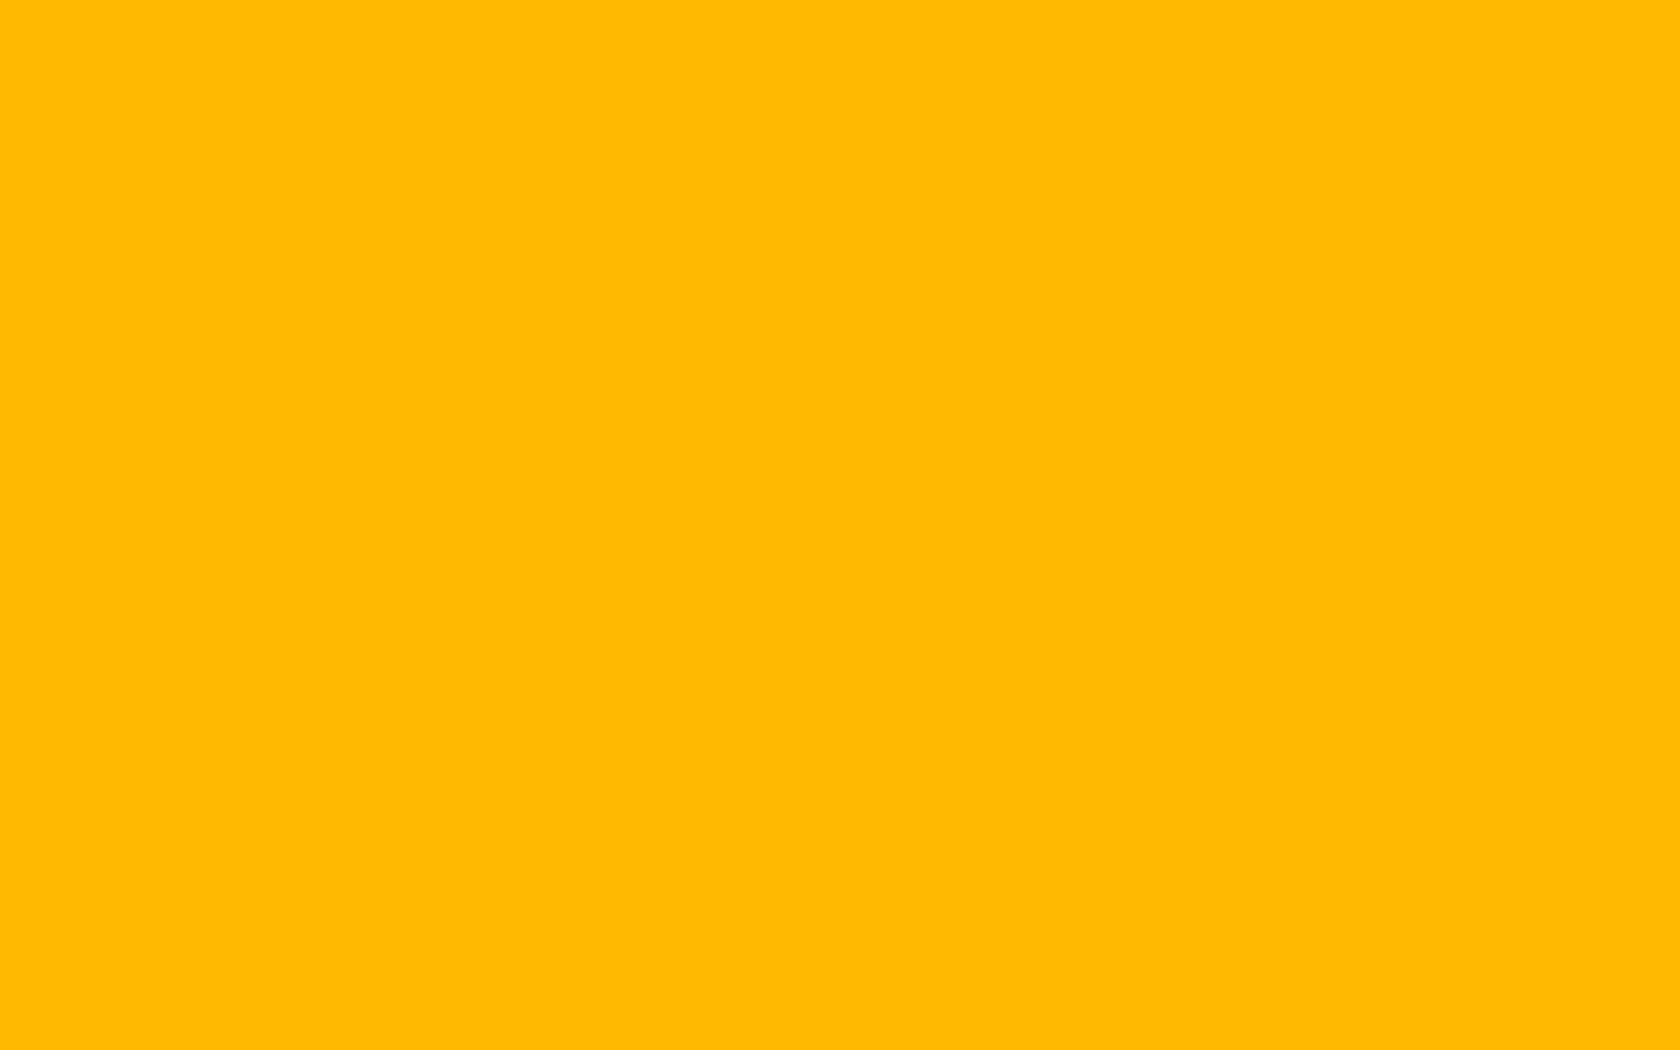 1680x1050 Selective Yellow Solid Color Background